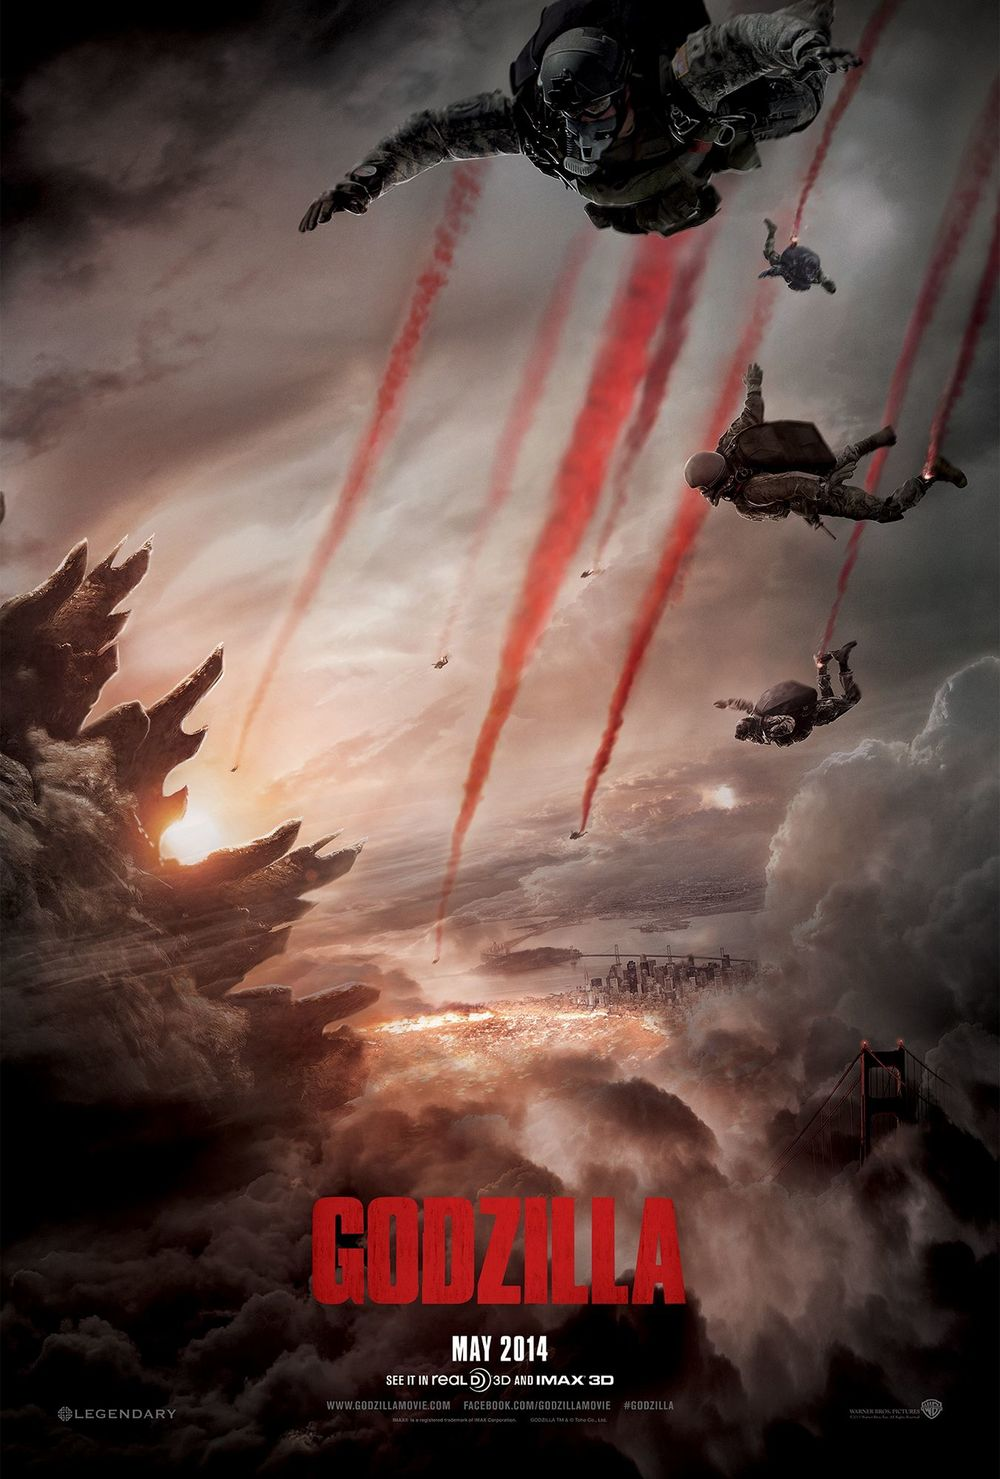 us-air-force-discusses-their-godzilla-battle-strategy